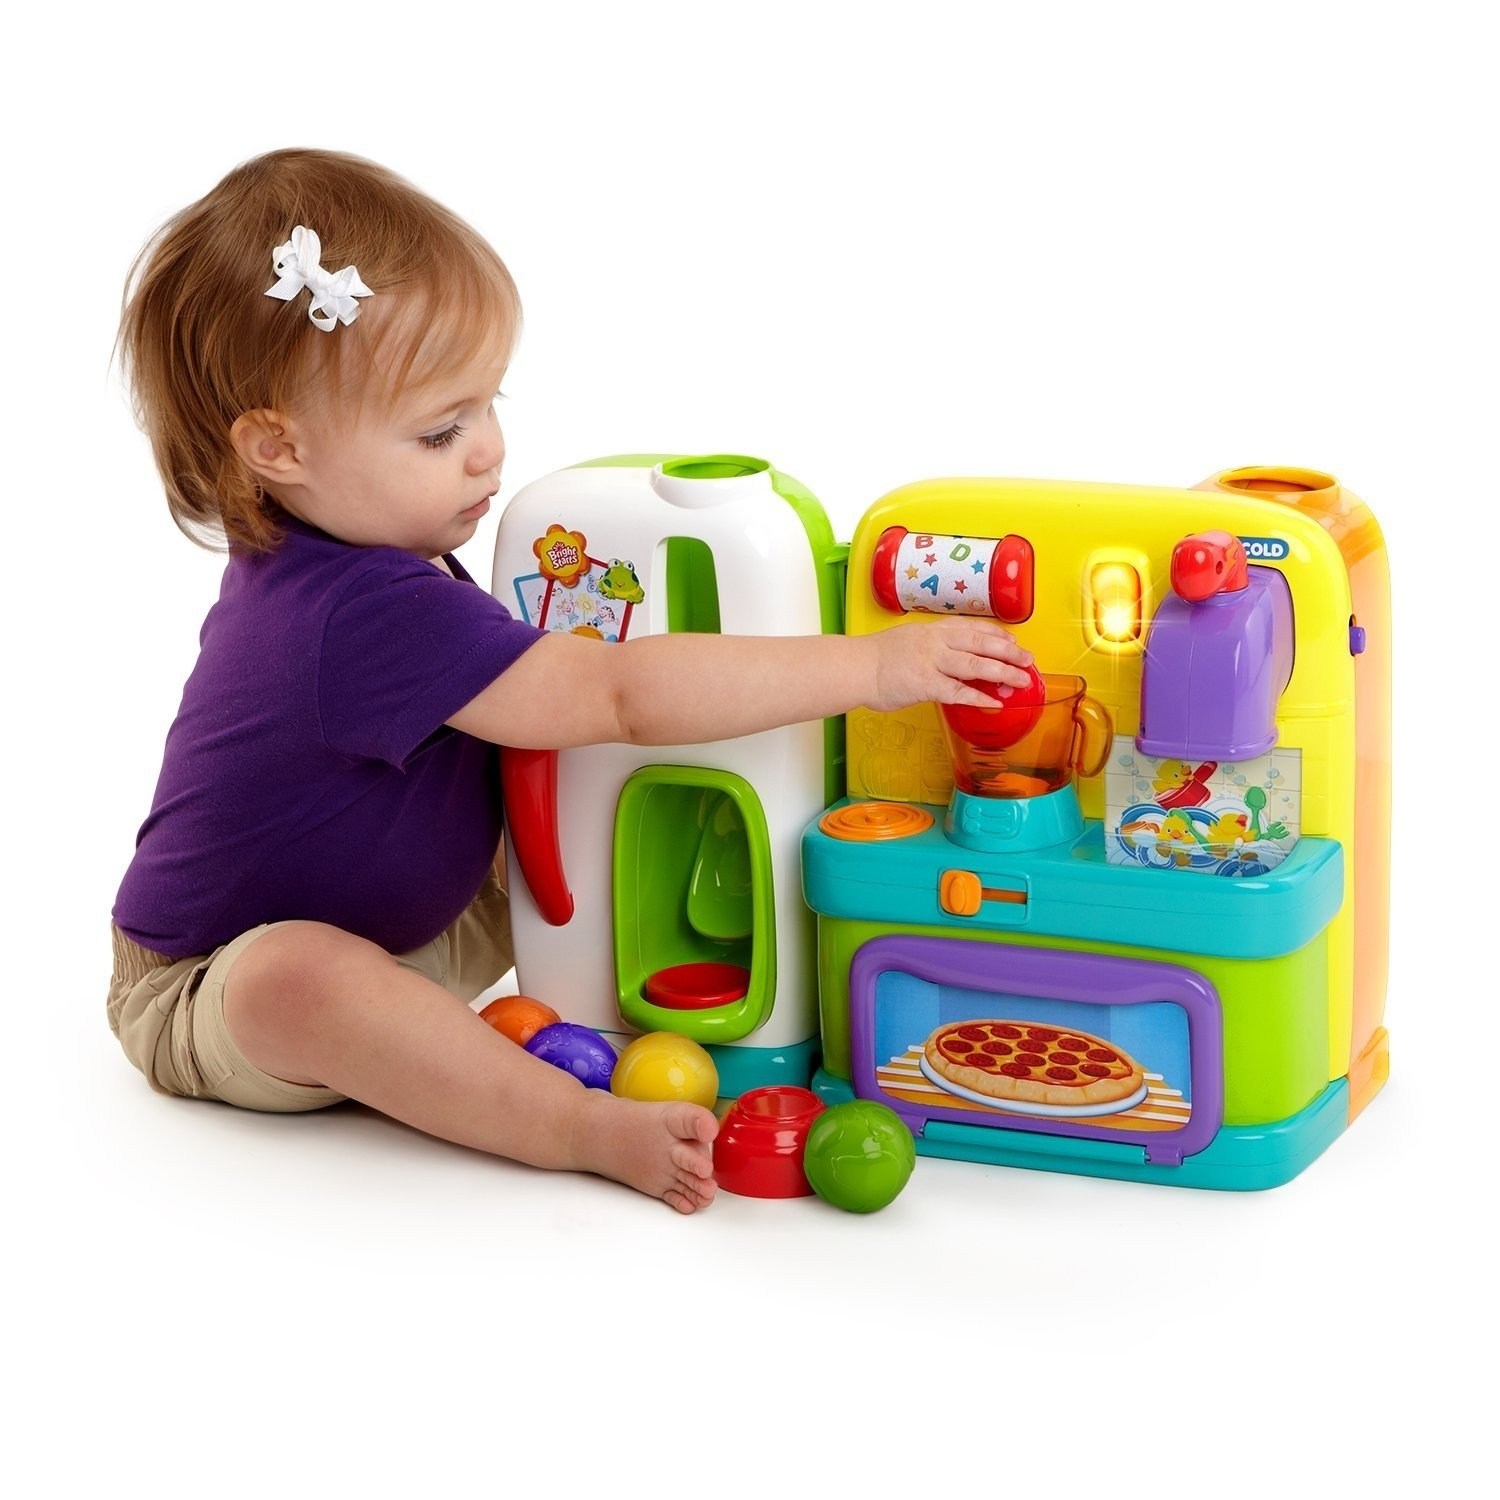 10 Unique Gift Ideas For One Year Old Baby Girl what are the best toys for 1 year old girls 25 birthday present 5 2021